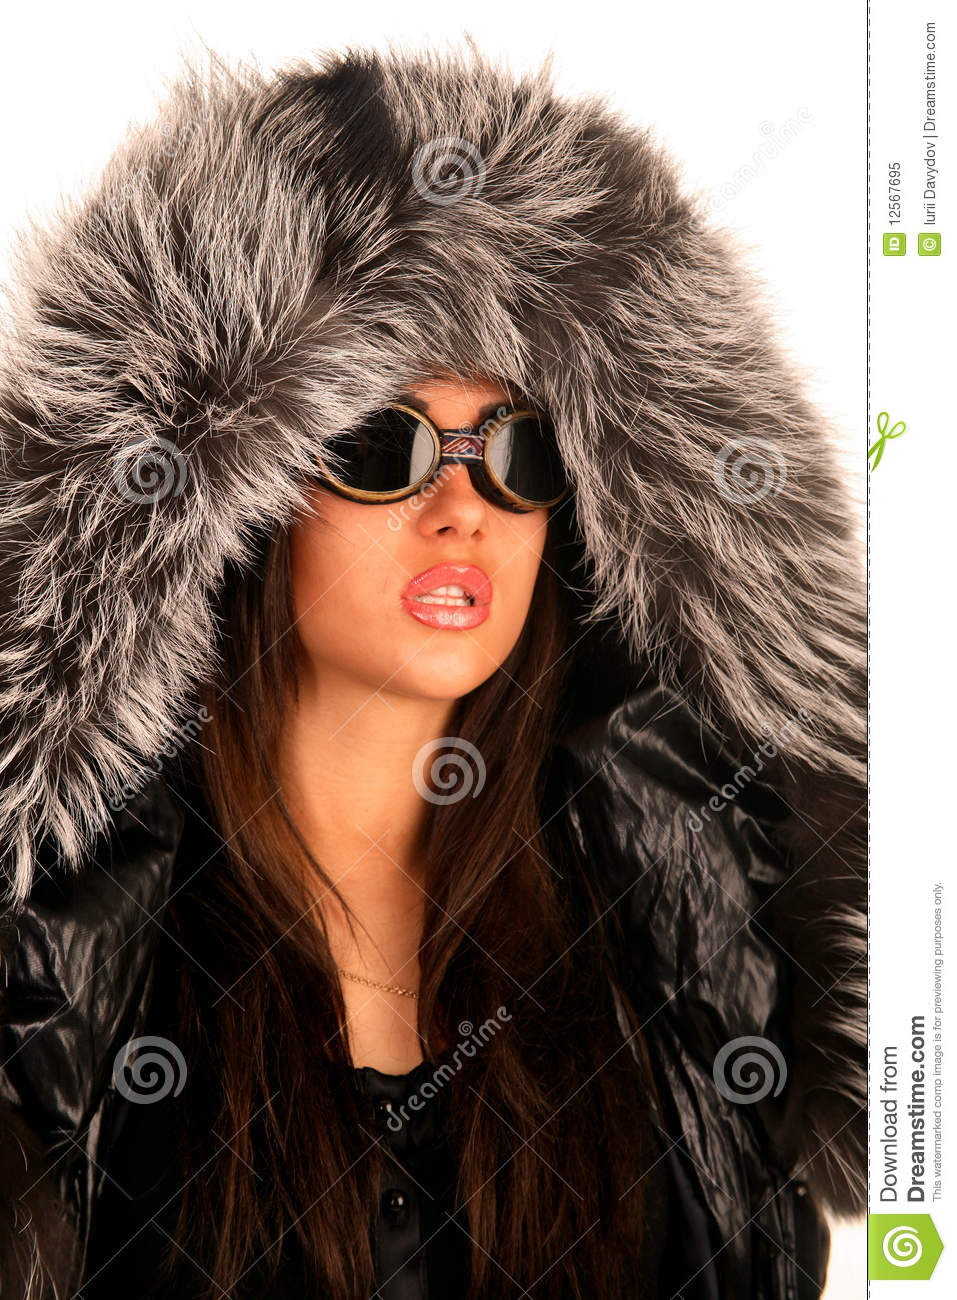 The Young Girl In Sunglasses And A Fur Hood Royalty Free